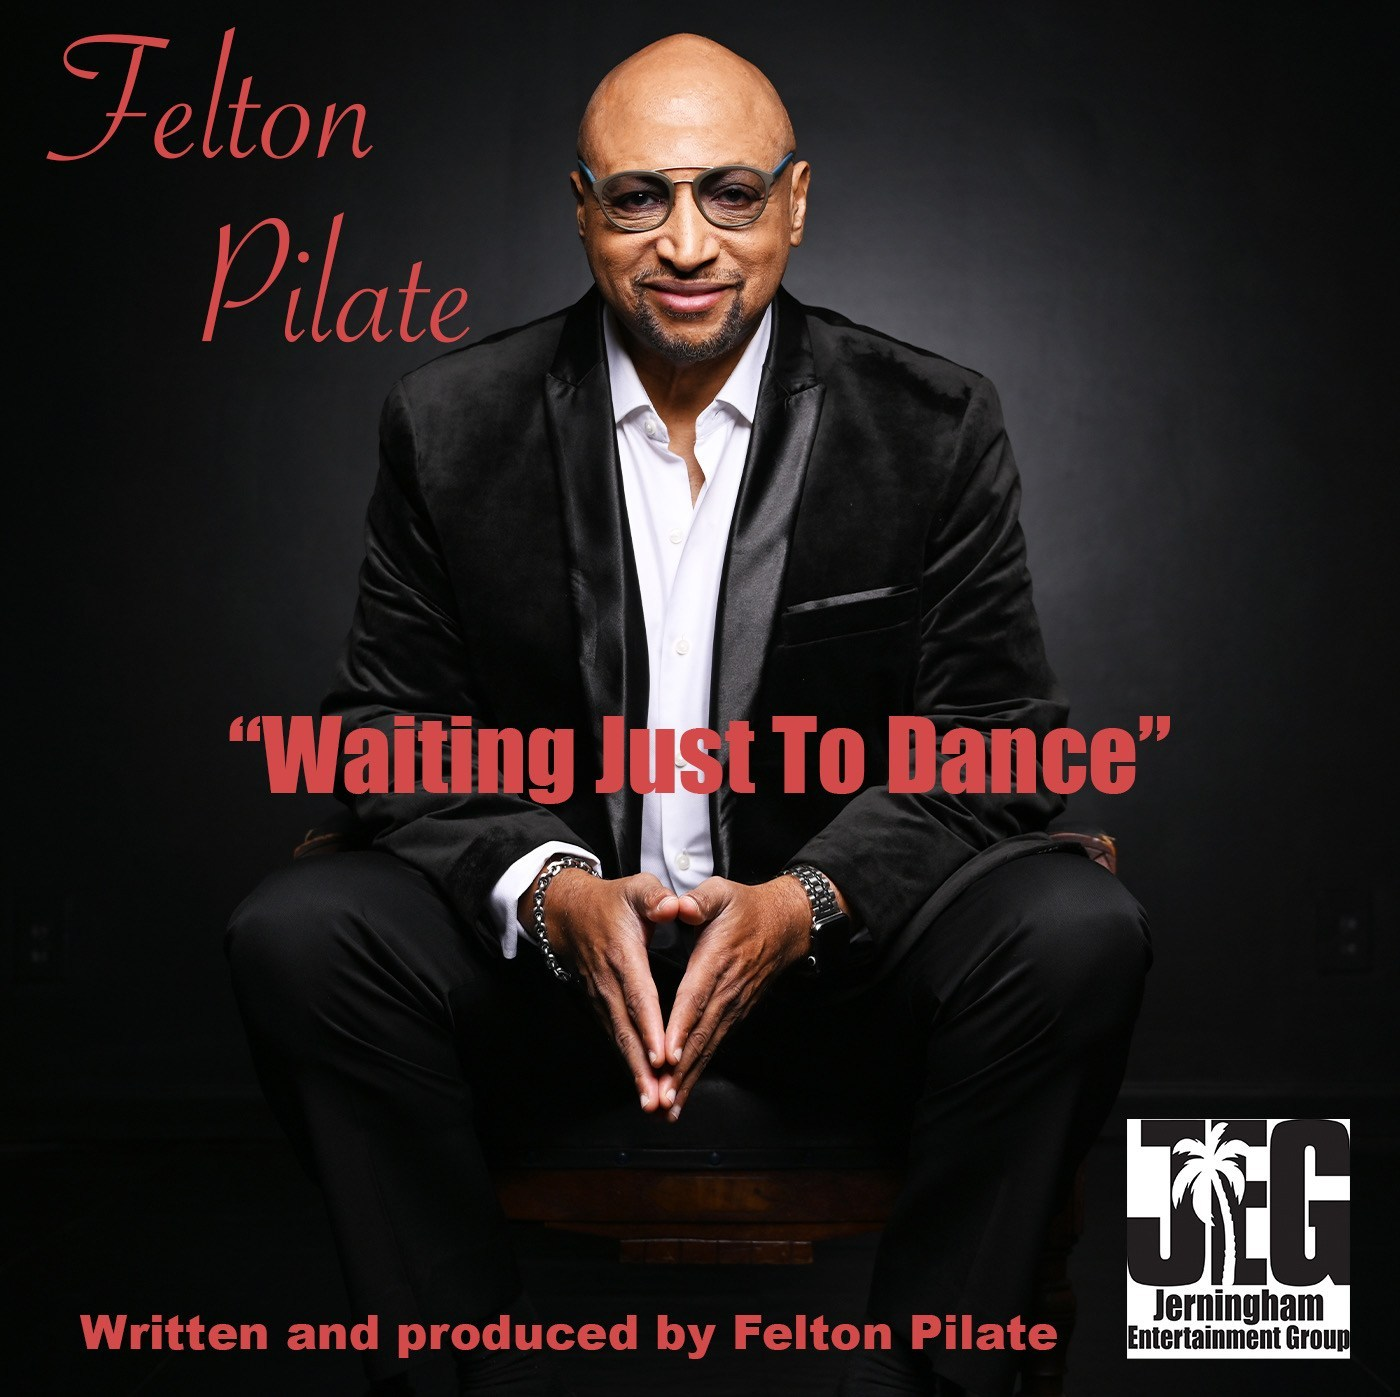 Art for Waiting Just to Dance by Felton Pilate